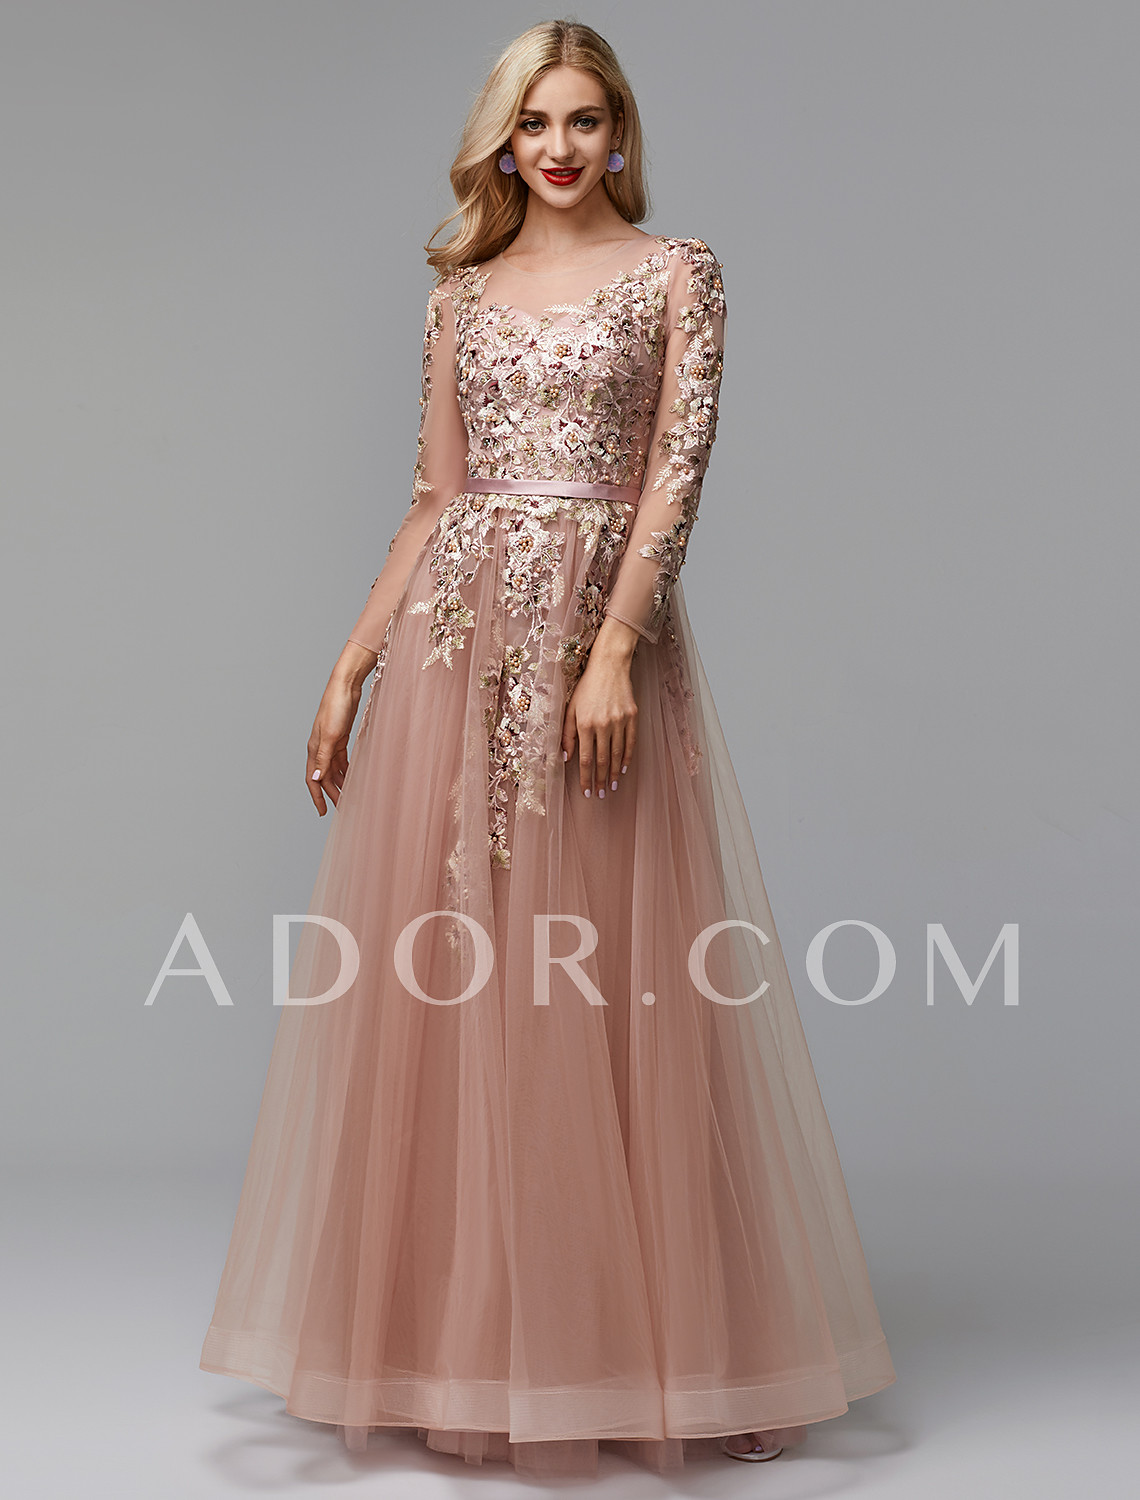 698d8c9eb3bd ADOR Evening Dress A-Line Illusion Neck Floor Length Lace / Tulle with  Beading / Embroidery #07037269